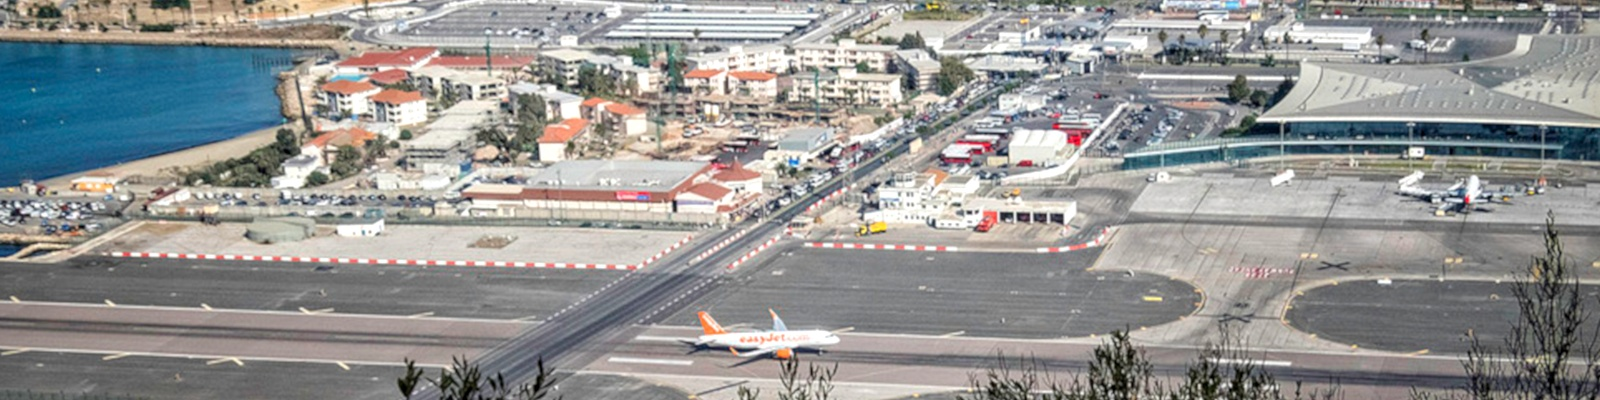 Panoramic view of the Gibraltar airport.